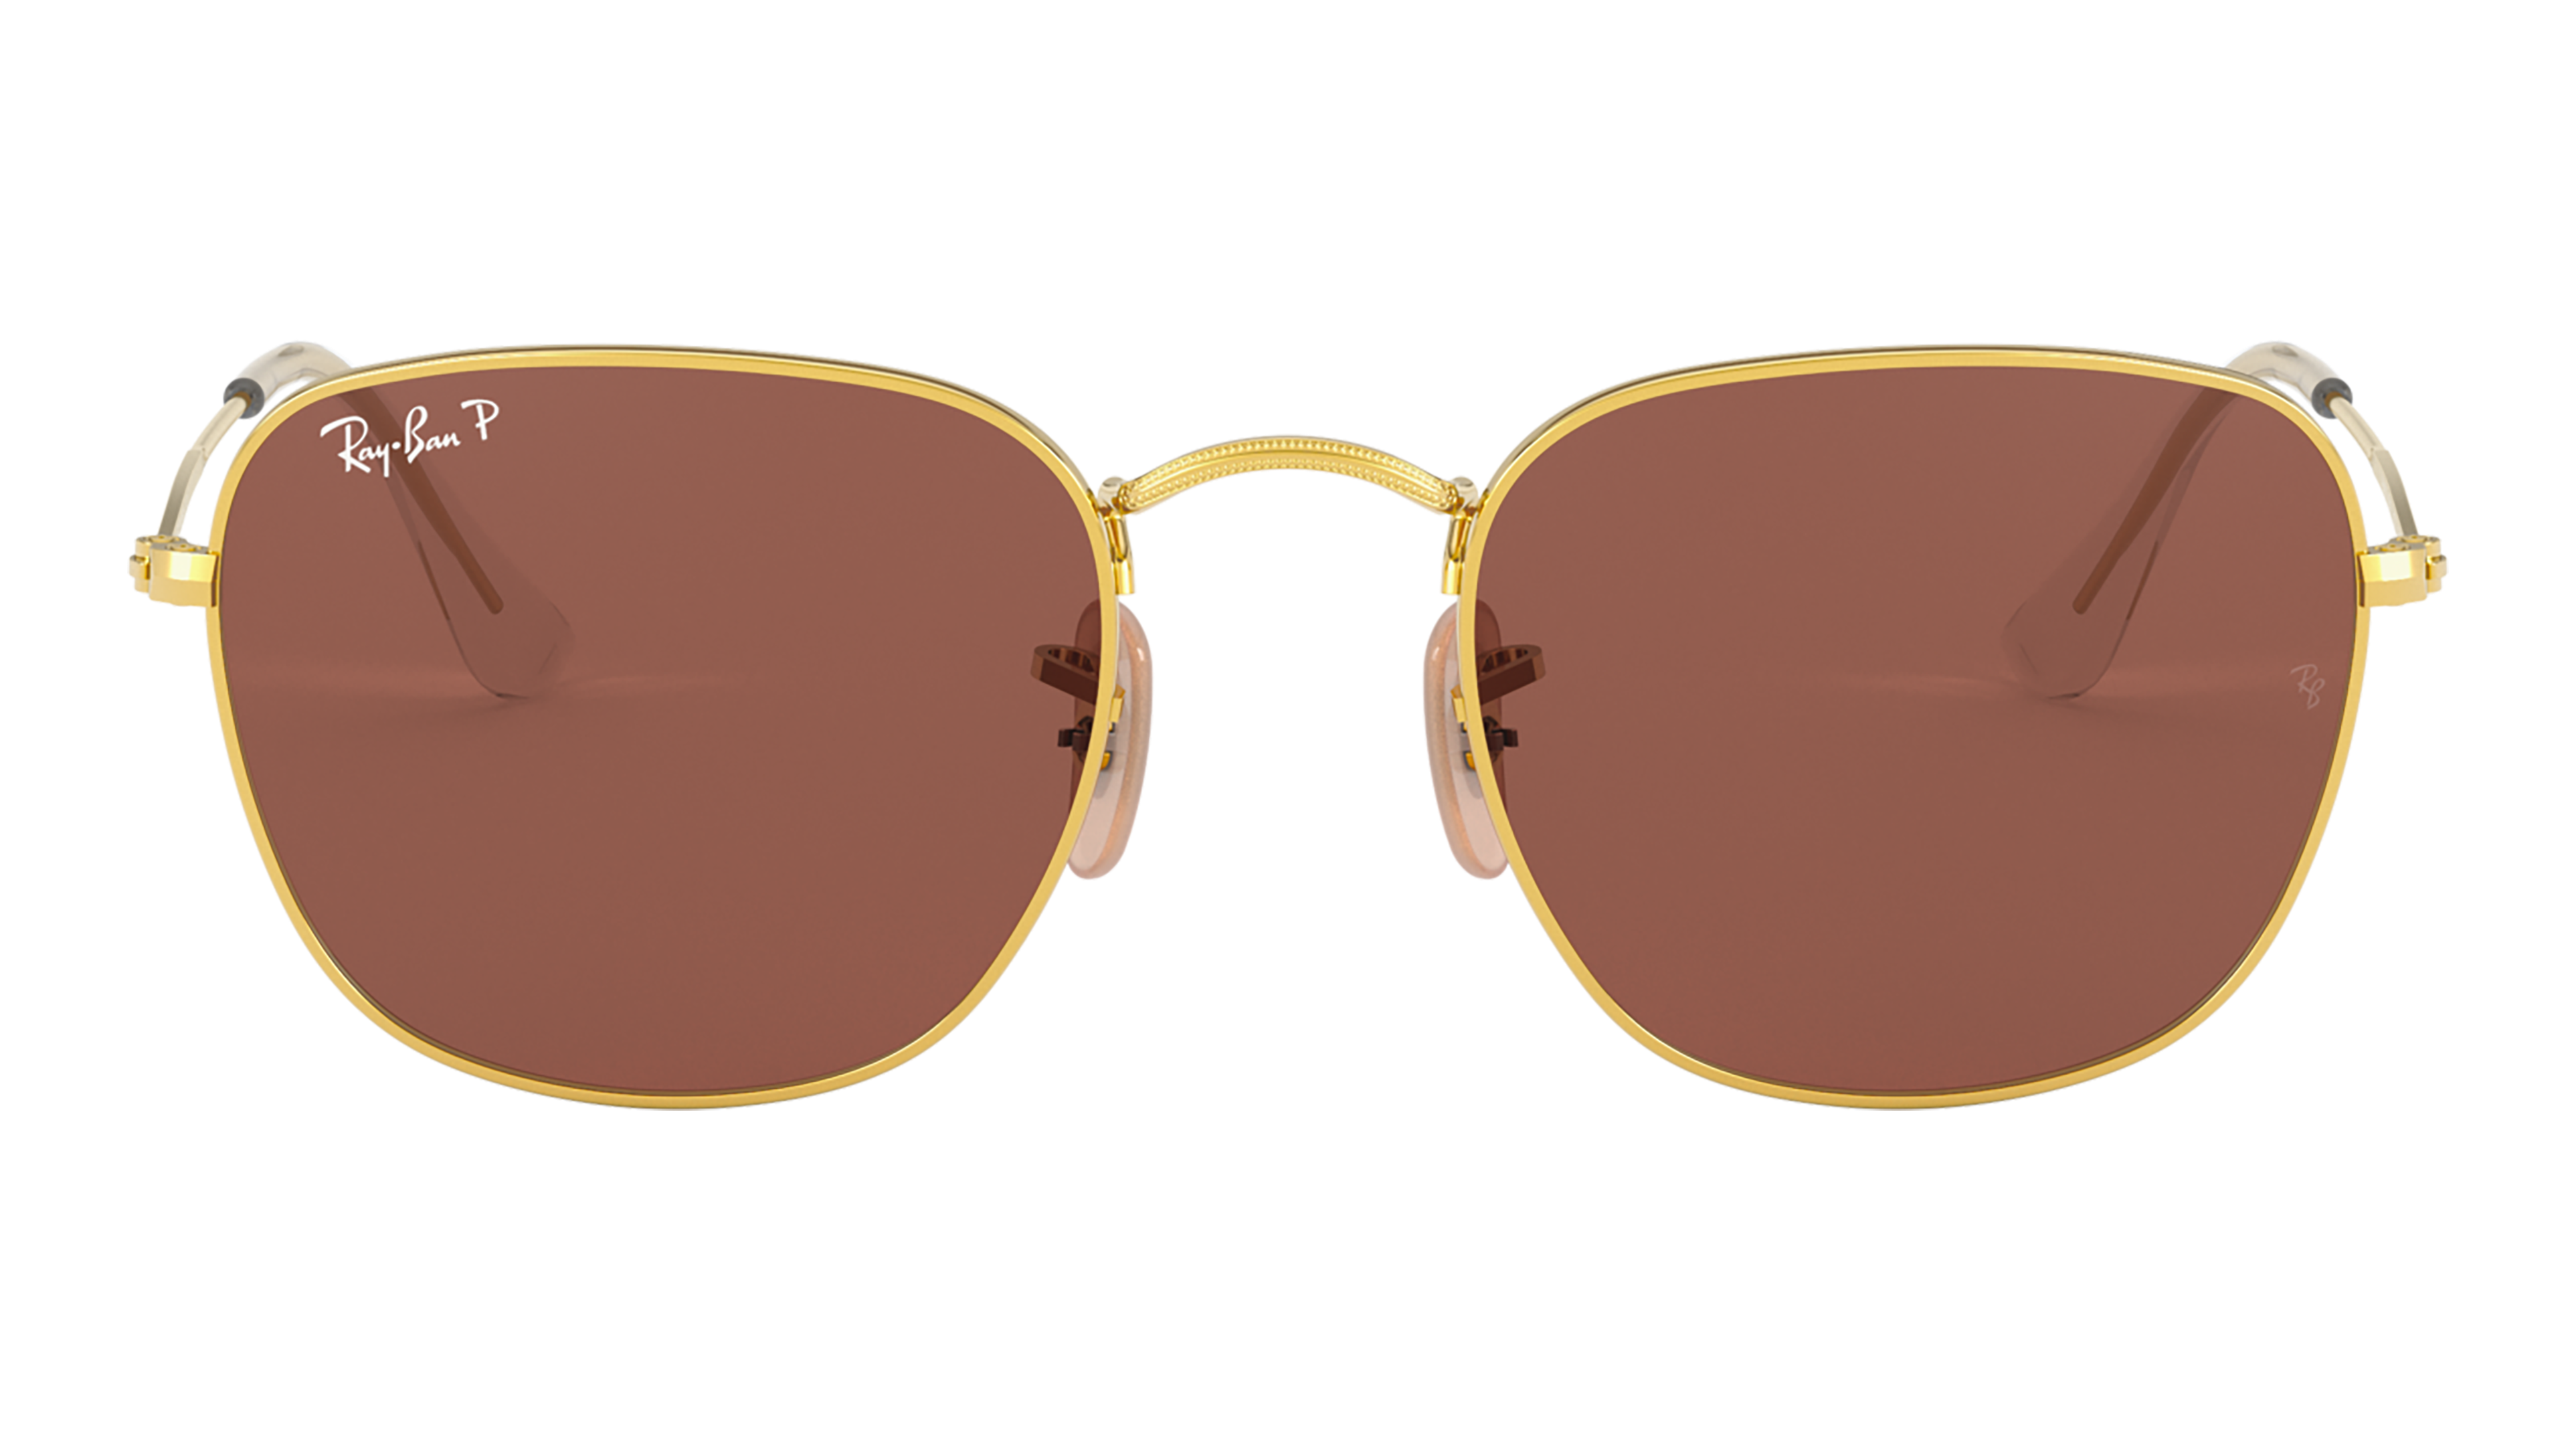 Front Ray-Ban Ray-Ban 0RB3857 9196AF 51/20 Goud/Rood